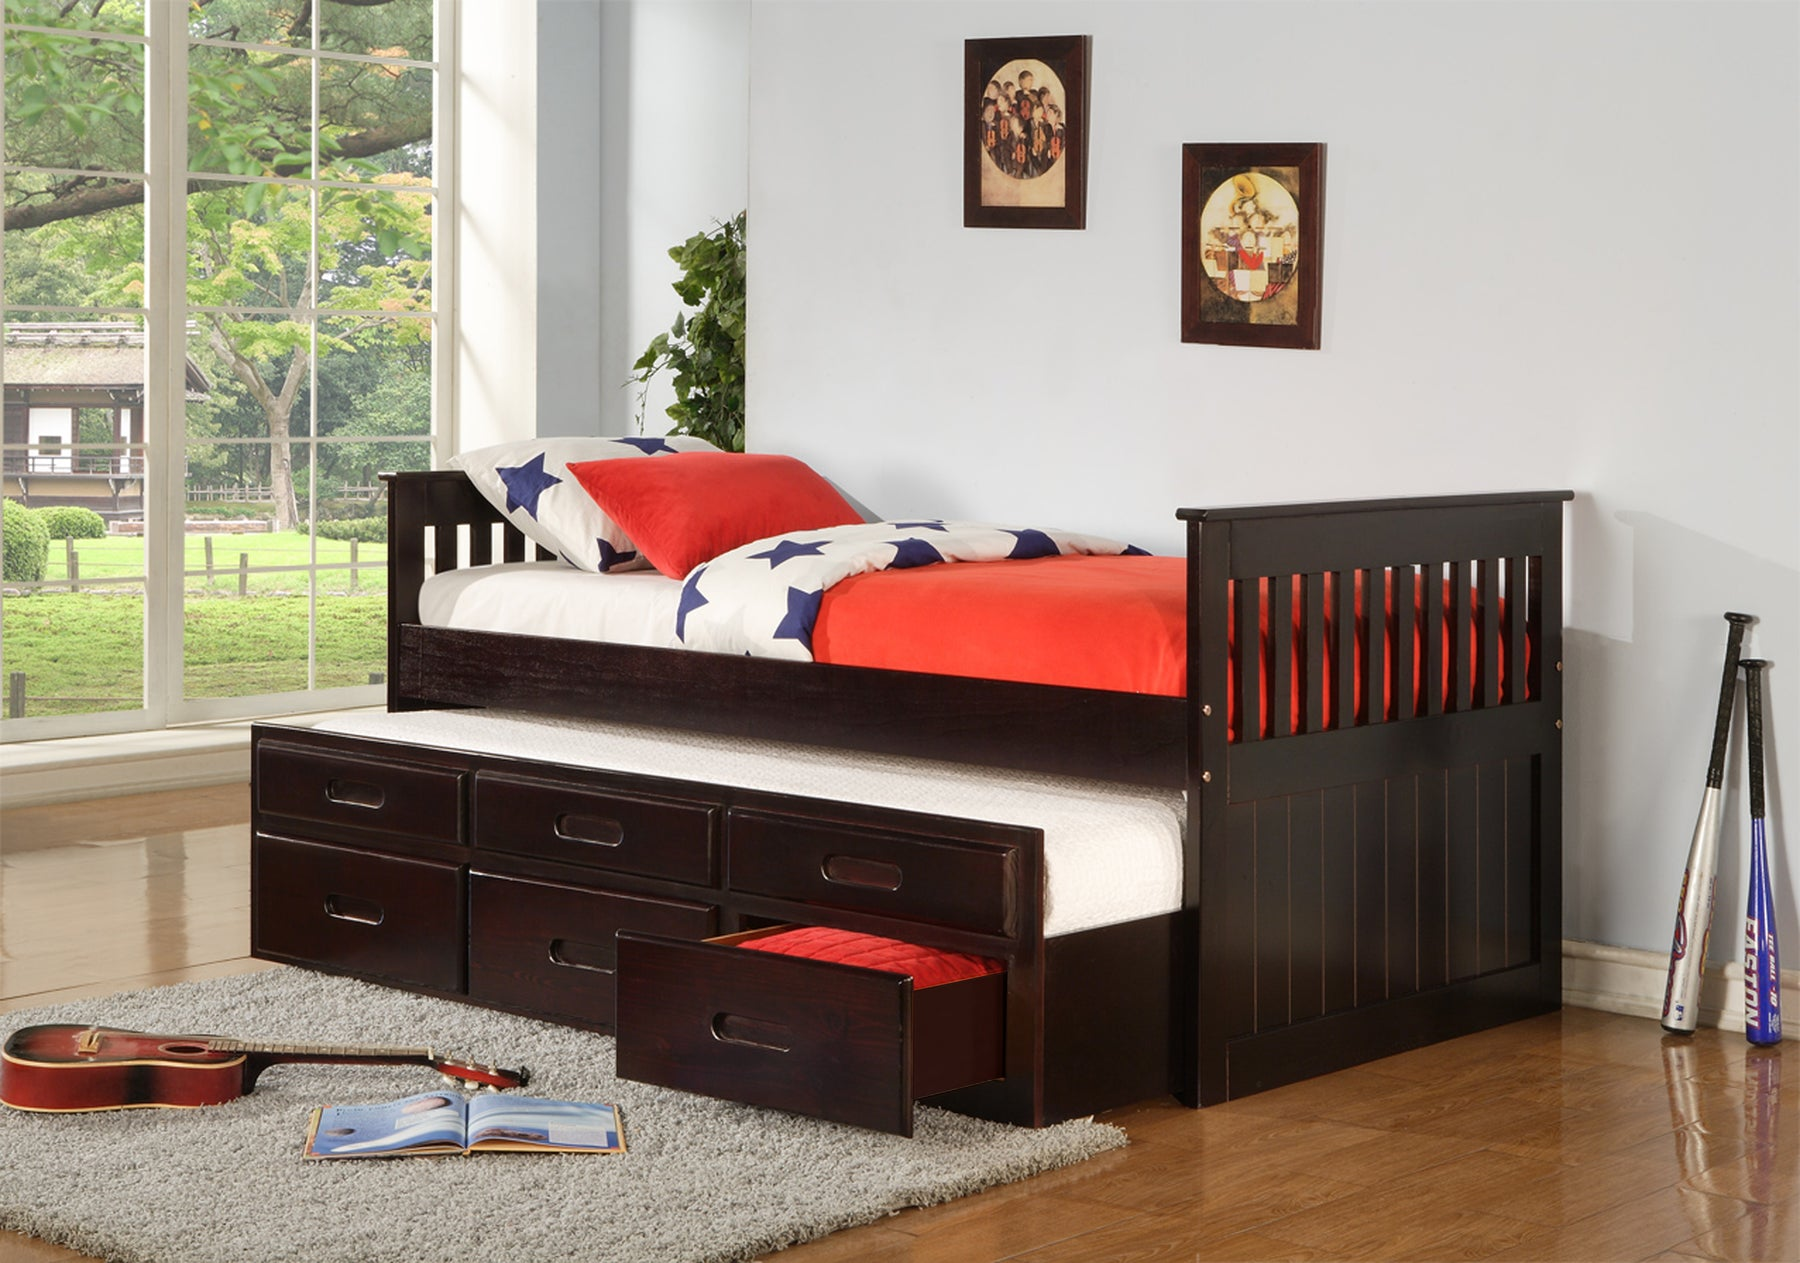 Carly Single Single Captain Bed With Drawers Furniture Club Online Inc